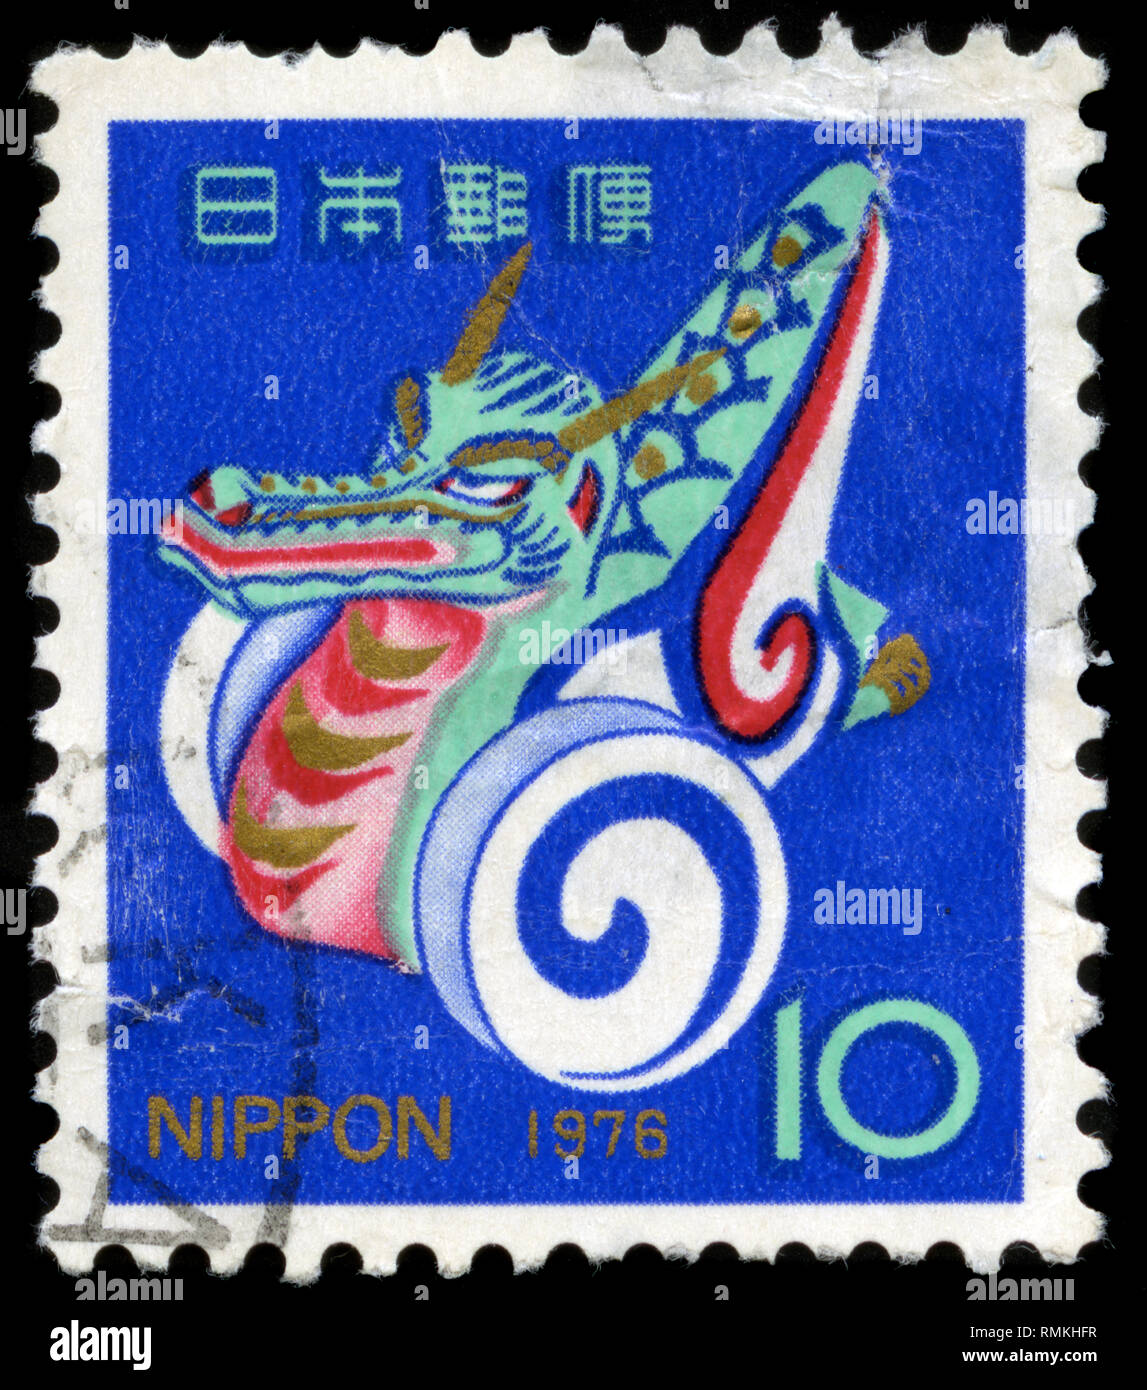 Postage stamp from Japan in the New Year's Greetings 1976 - Year of the Dragon series issued in 1975 - Stock Image